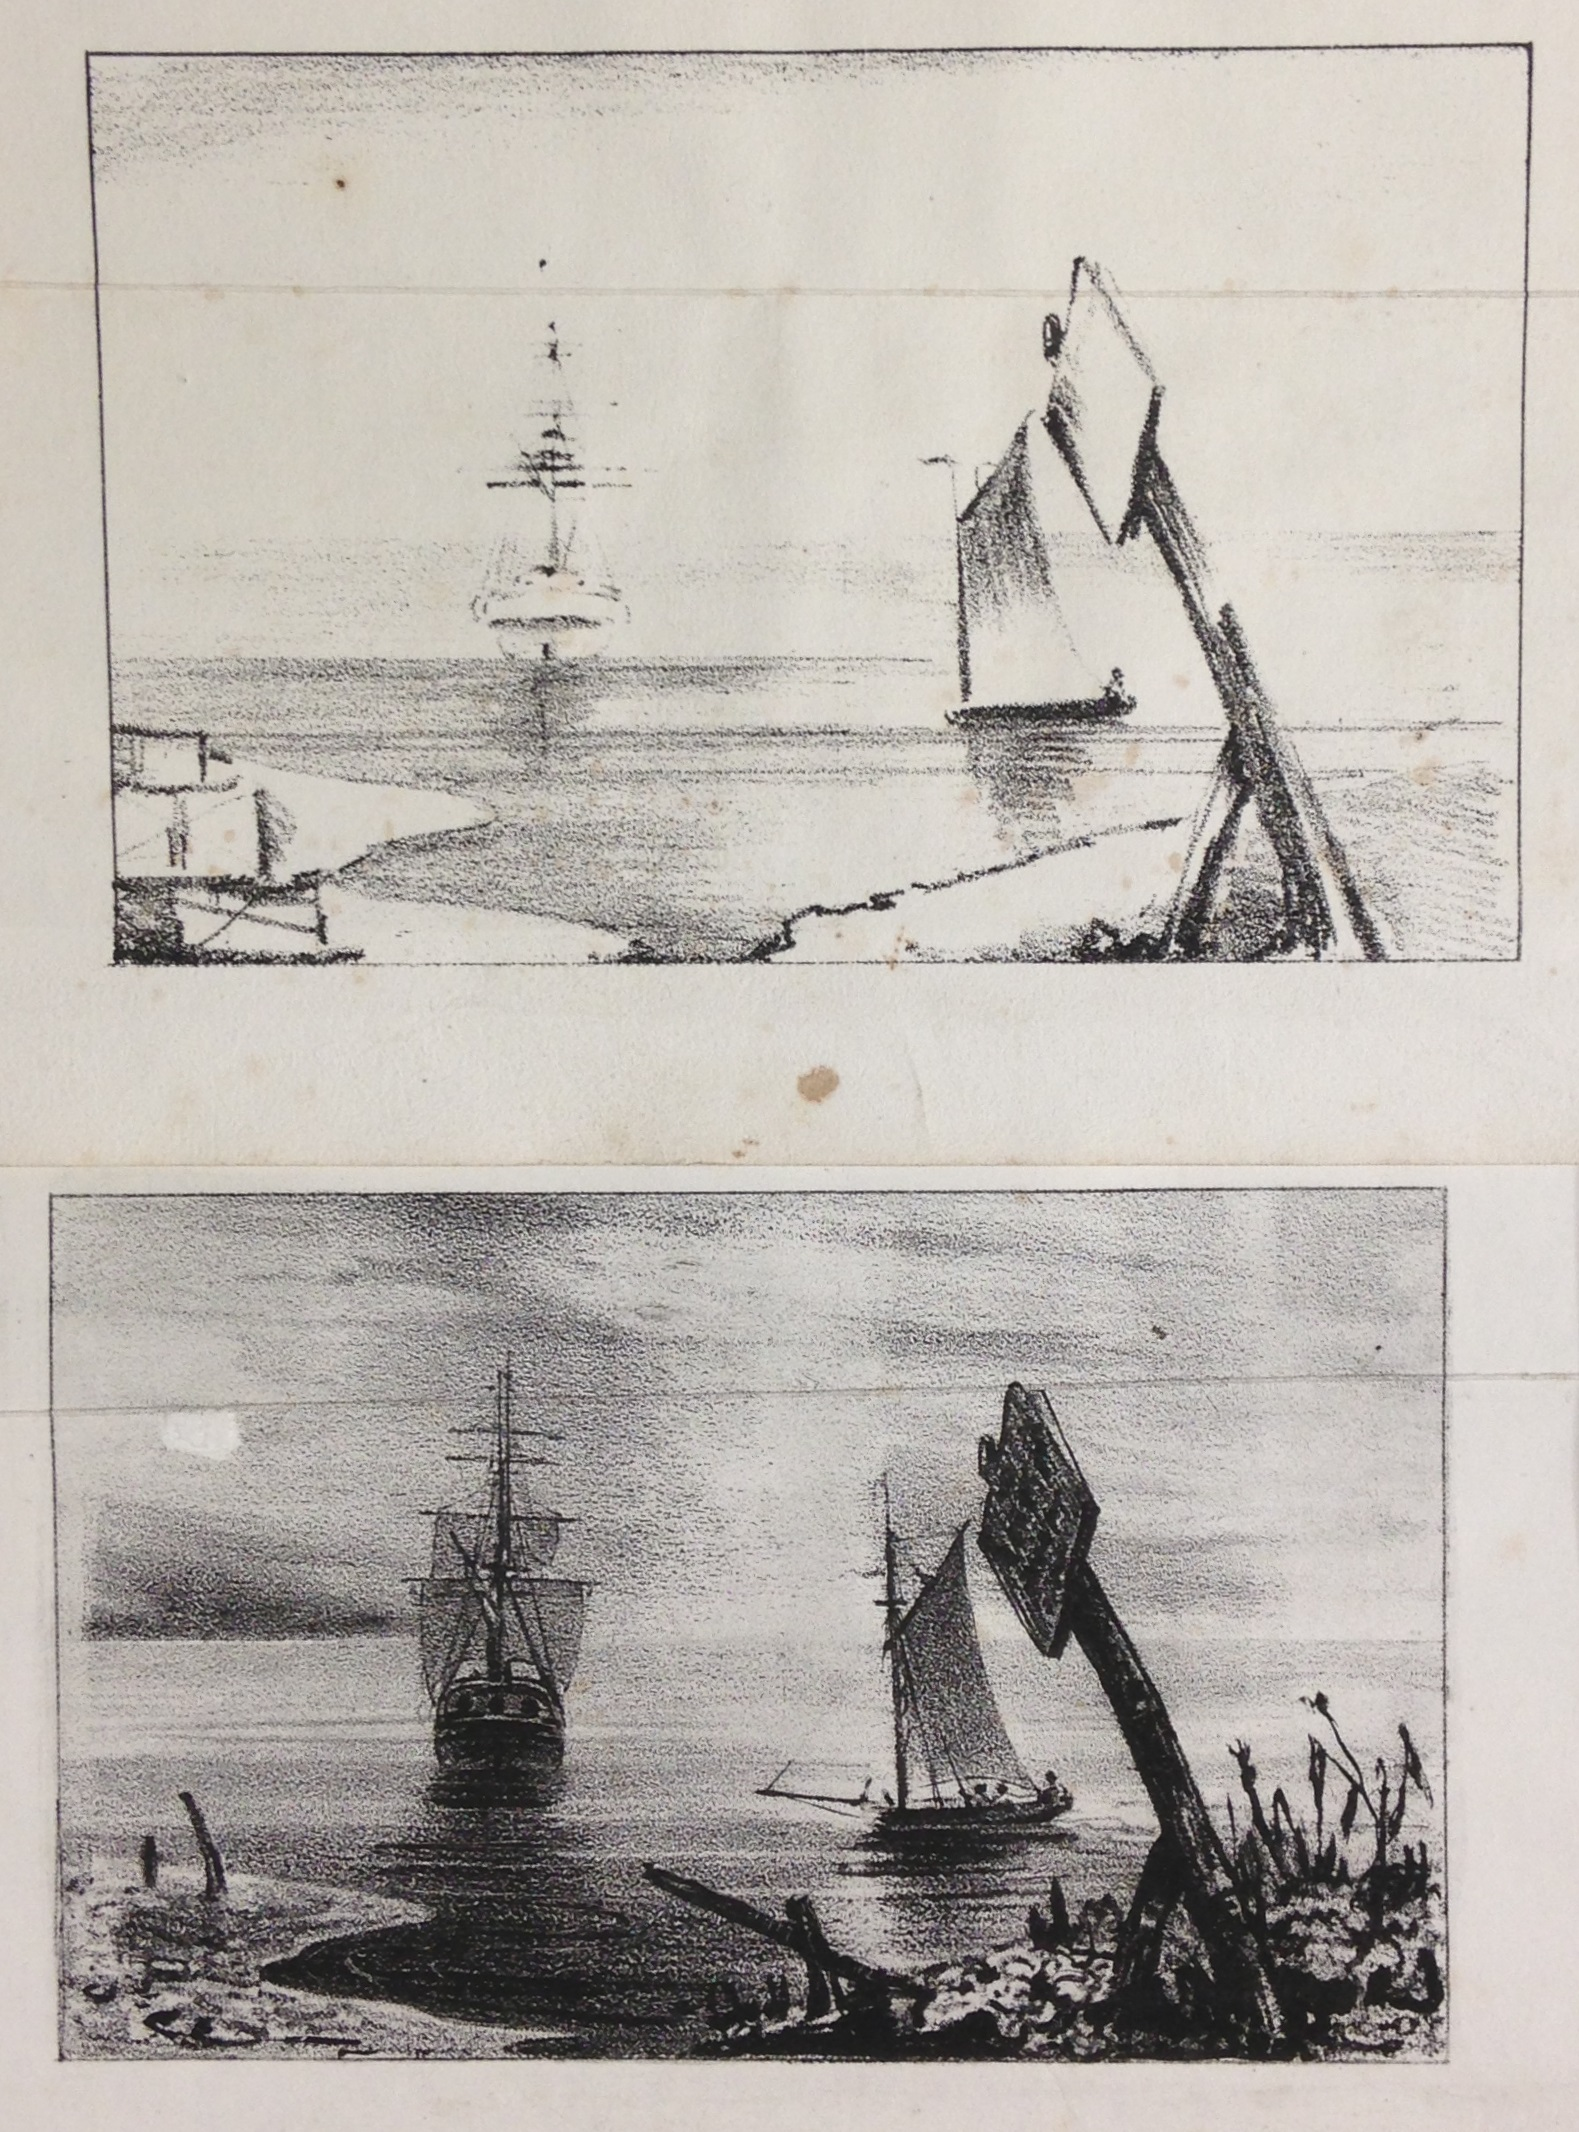 Two stages in the creation of a lithographic image, from Alphonse Chevallier, Mémoire sur l'art du lithographe (Paris, [1829])  (NE2420 .C54 1829)